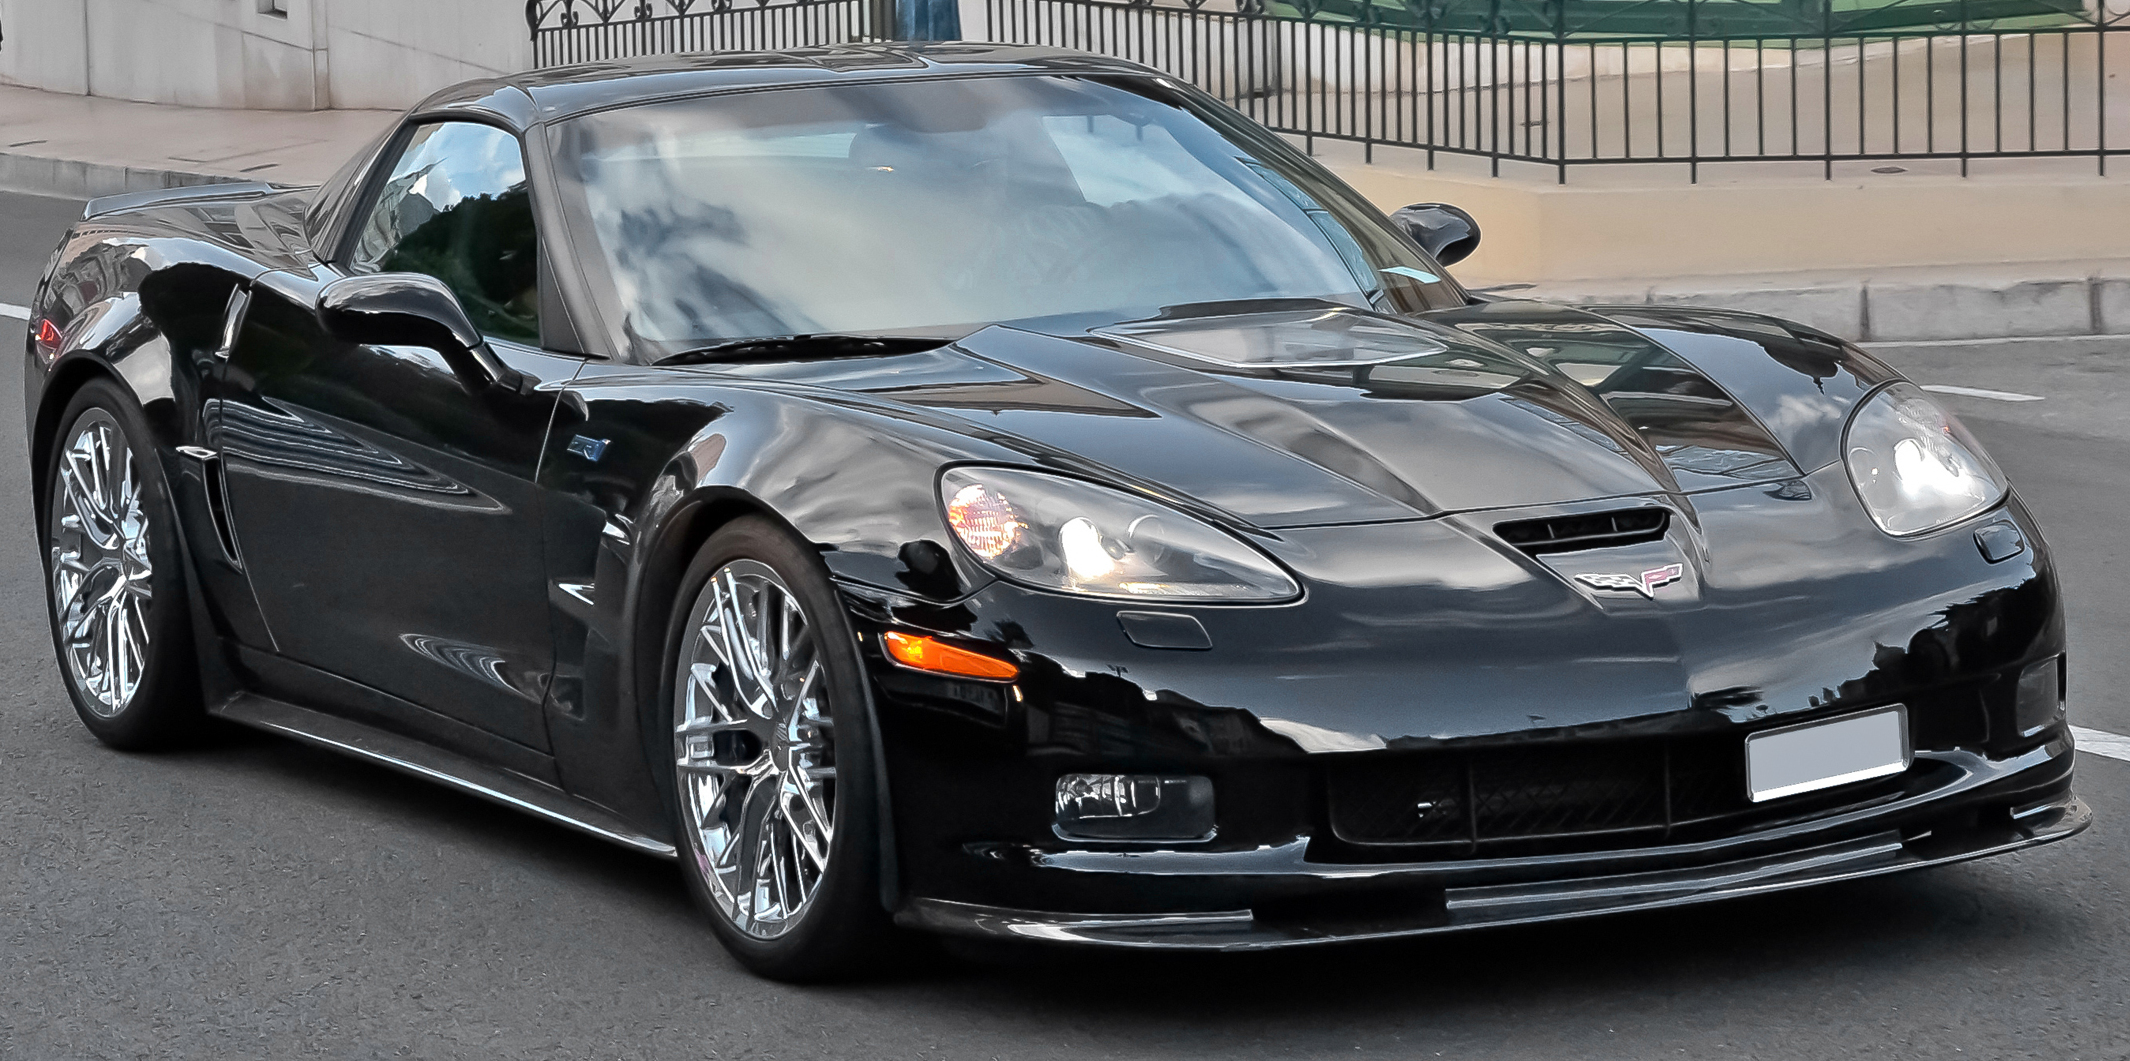 chevrolet corvette c6 wiki everipedia. Black Bedroom Furniture Sets. Home Design Ideas